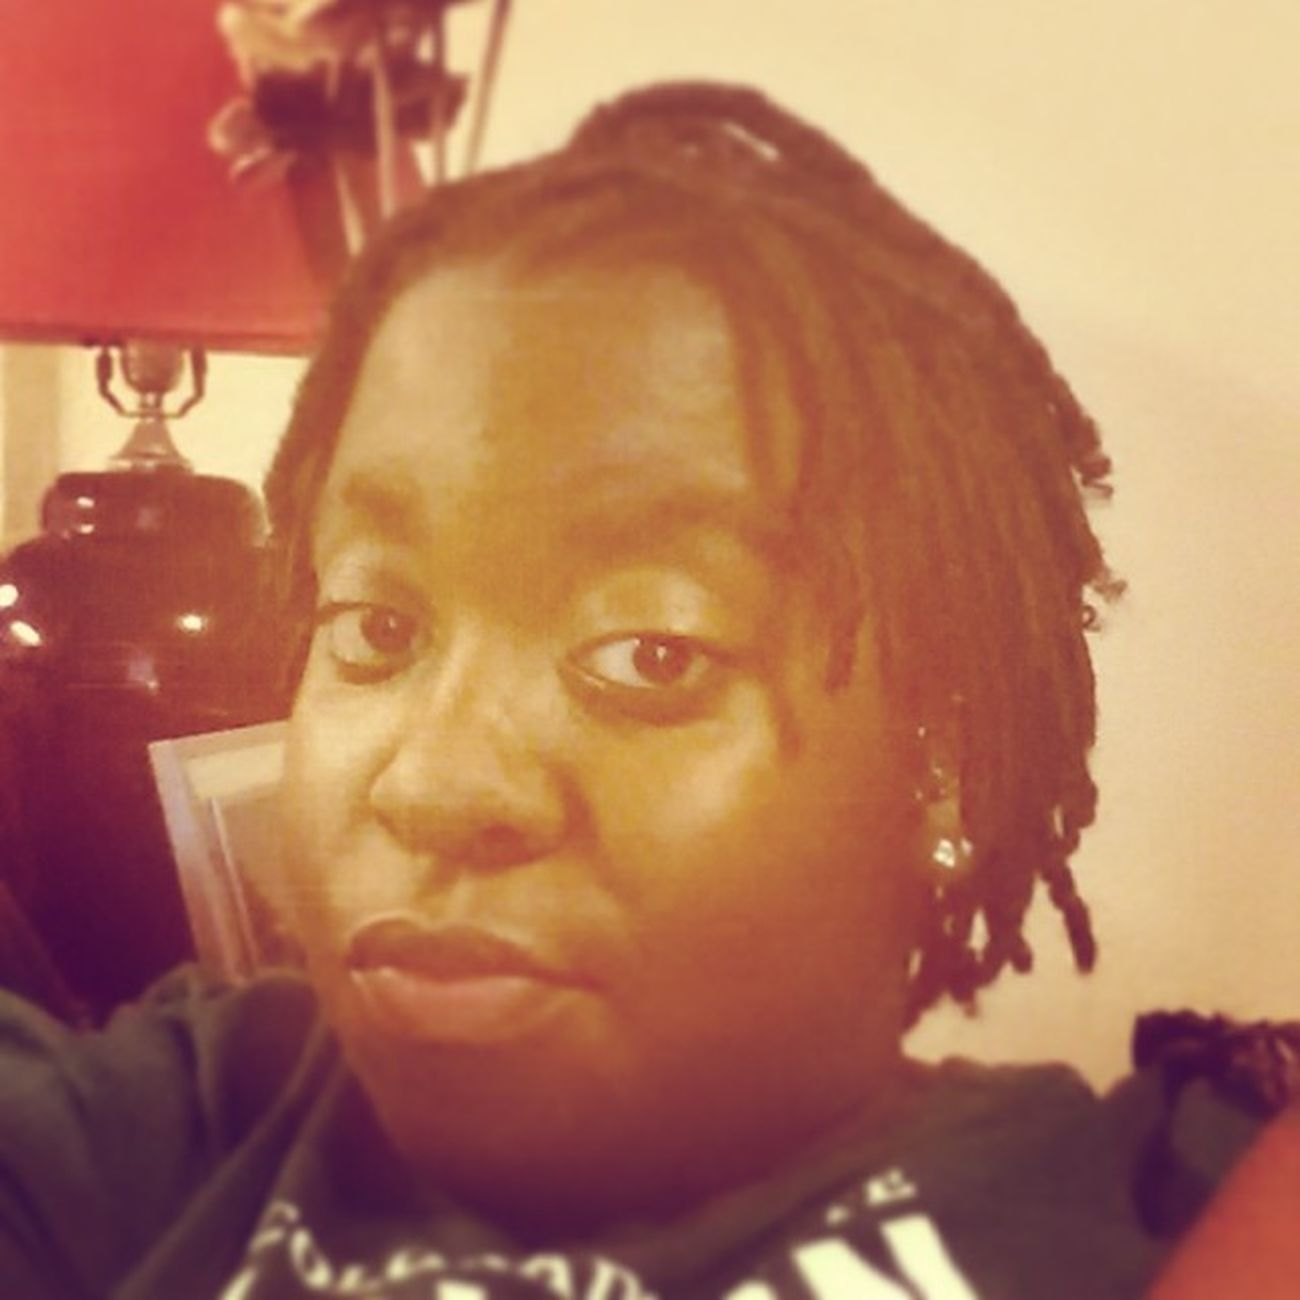 Finally got my starter locs! So excited for this new hair journey!! Newhair Newandimprovedme Lovinit ^_^